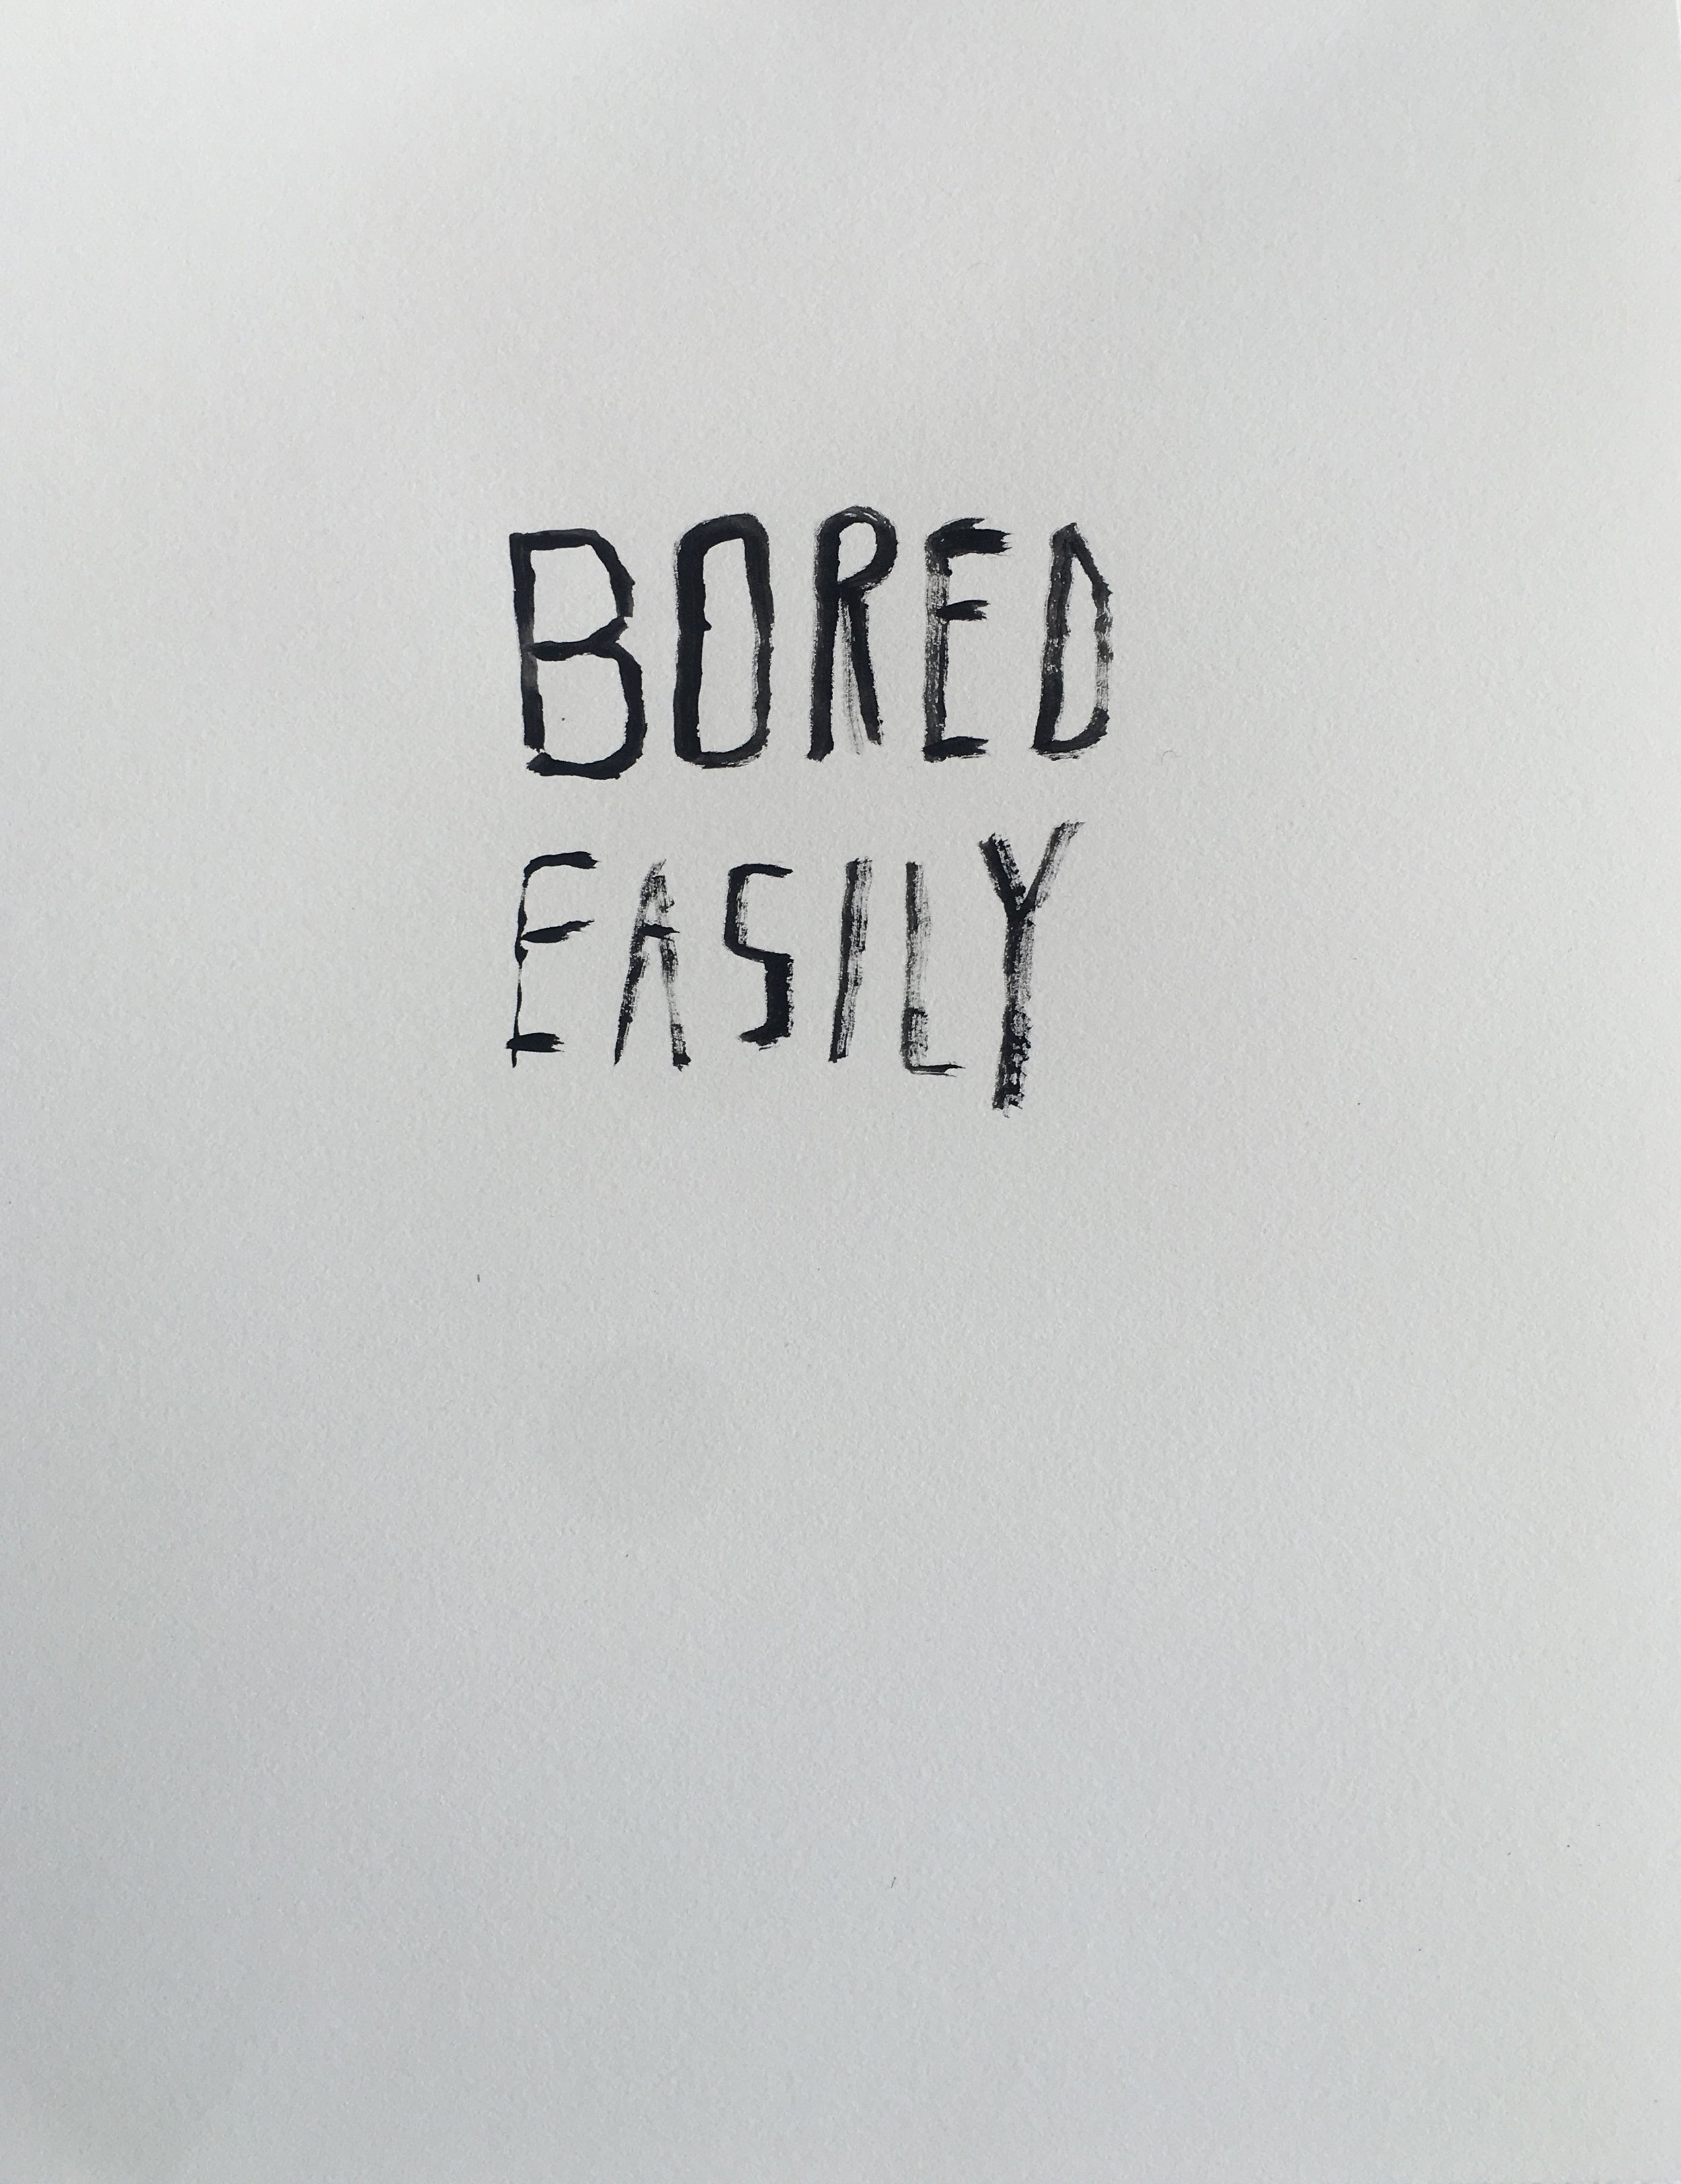 """Image from the exhibit """"Bored Easily"""" by Josh Bolin"""